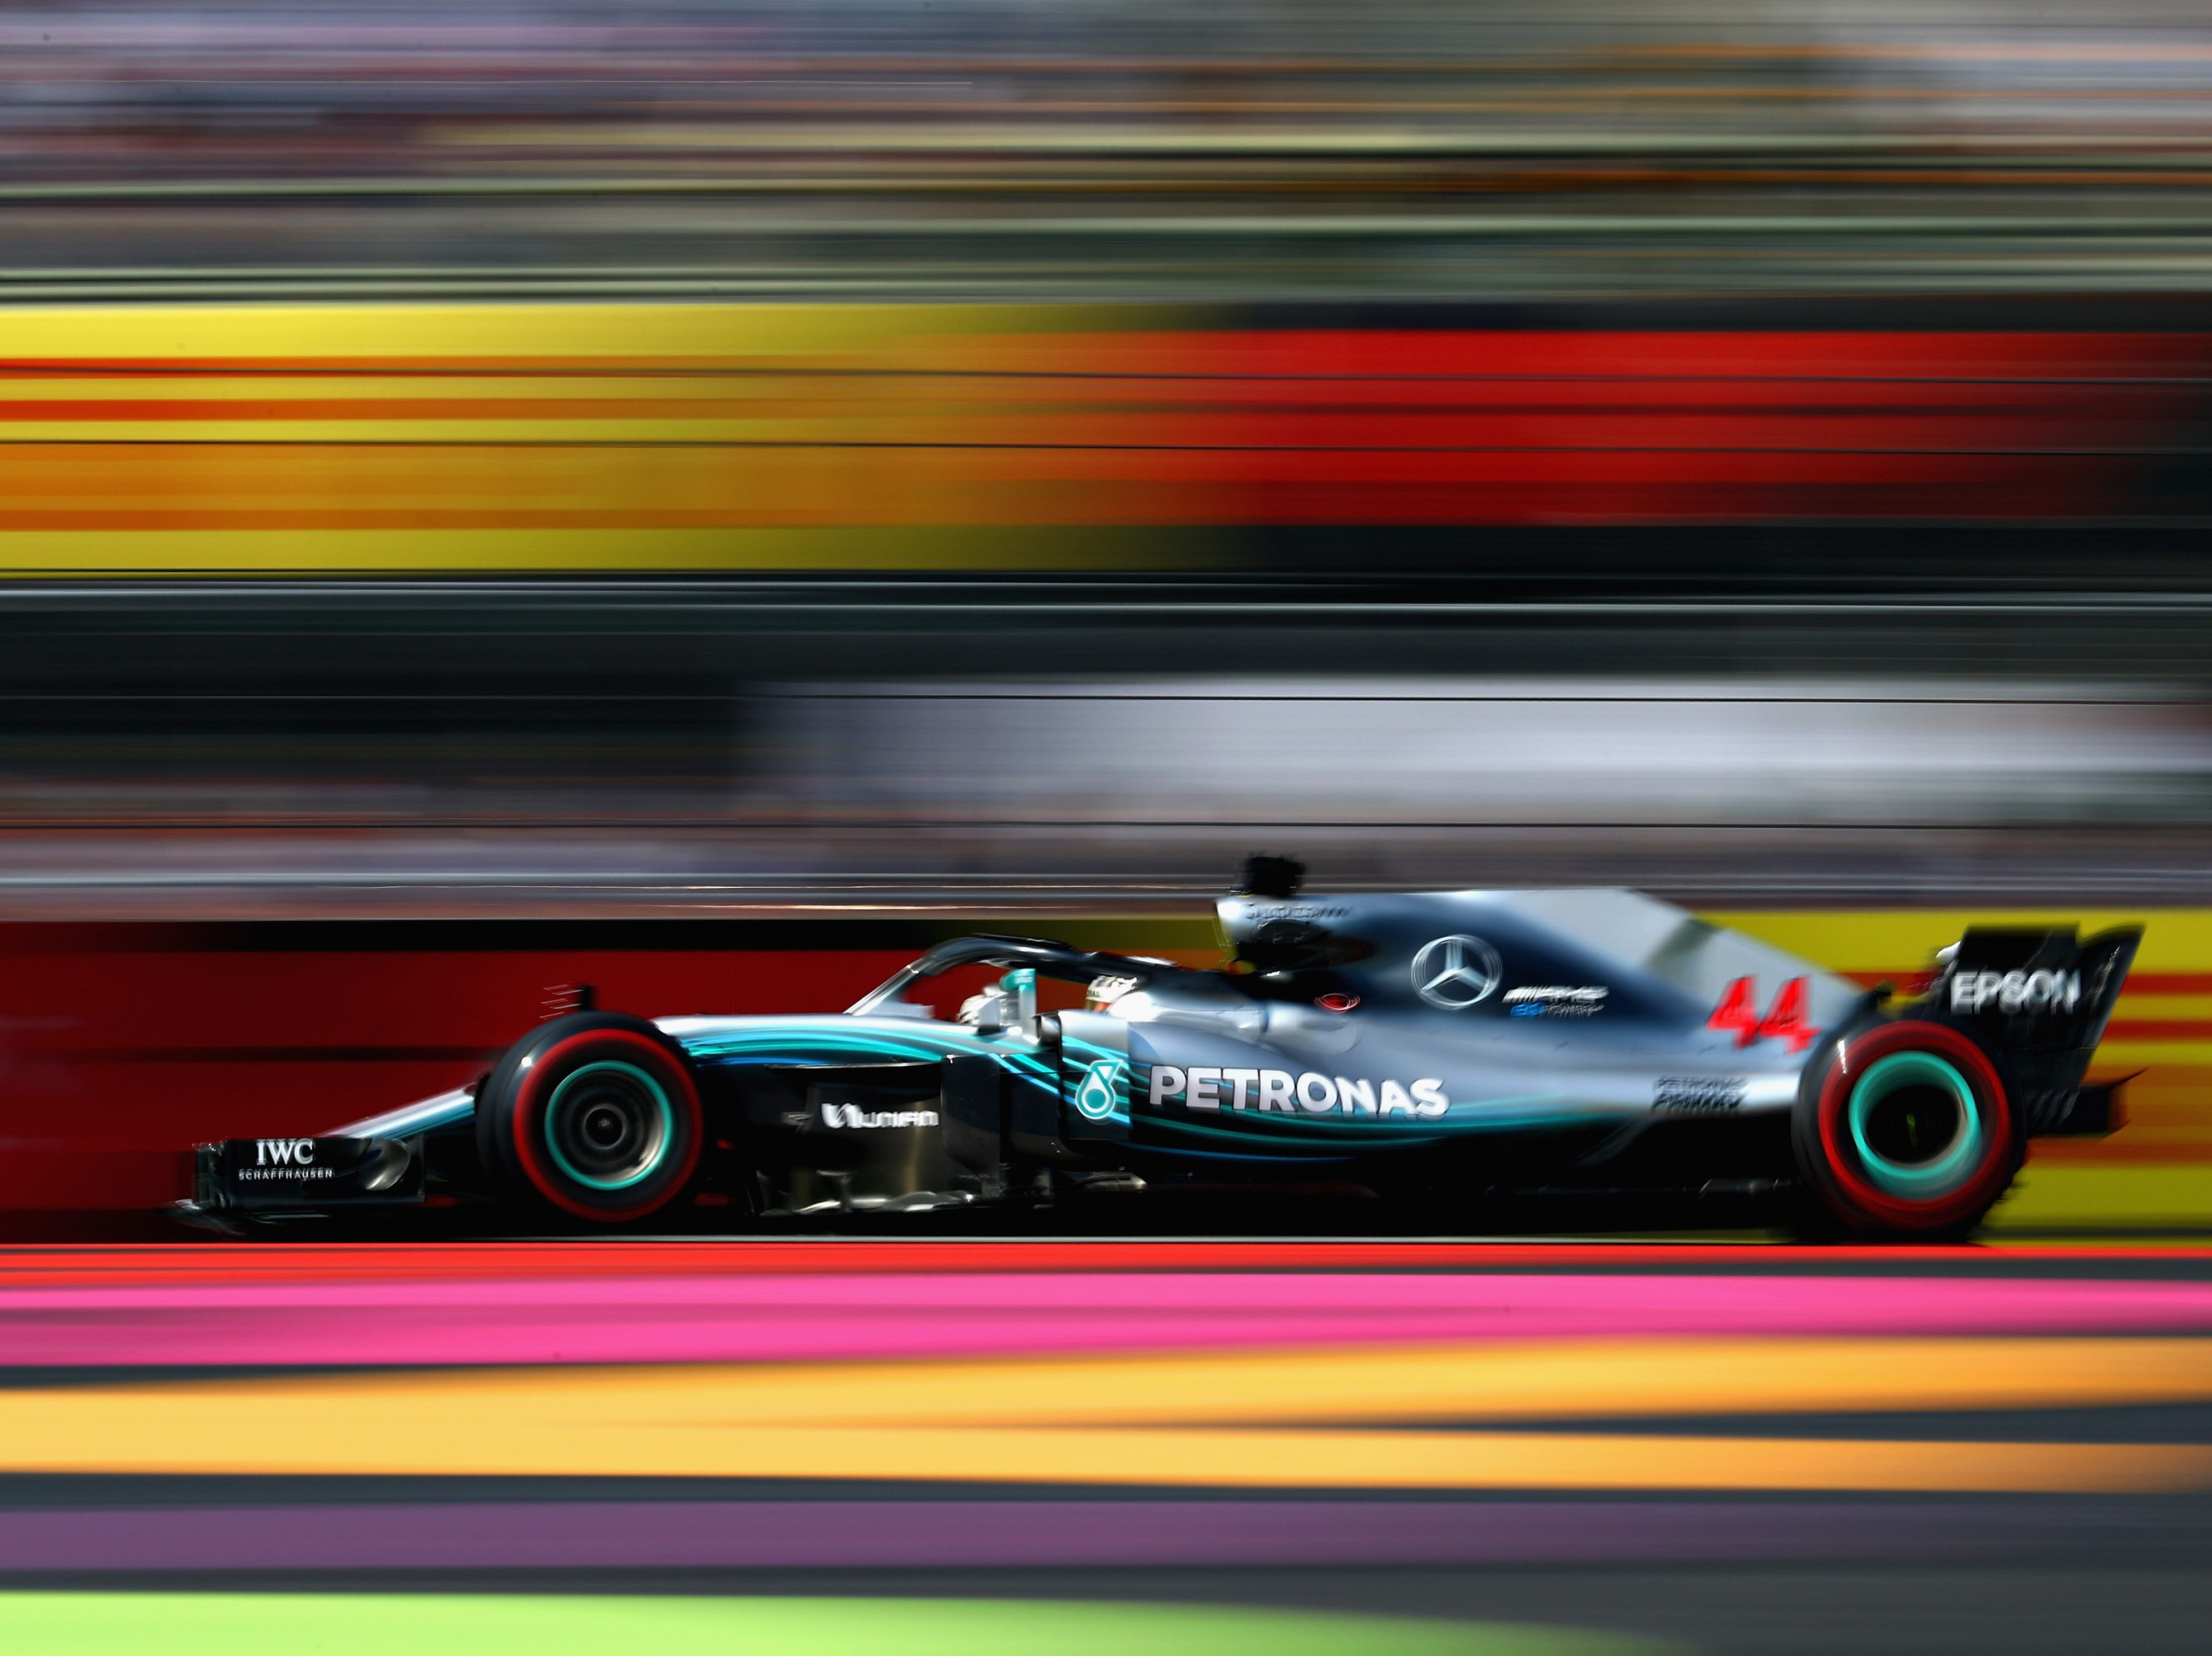 Mercedes team driver Lewis Hamilton of Great Britain practices for the Formula One Grand Prix of Mexico at Autodromo Hermanos Rodriguez on Friday, Oct. 26, 2018 in Mexico City.